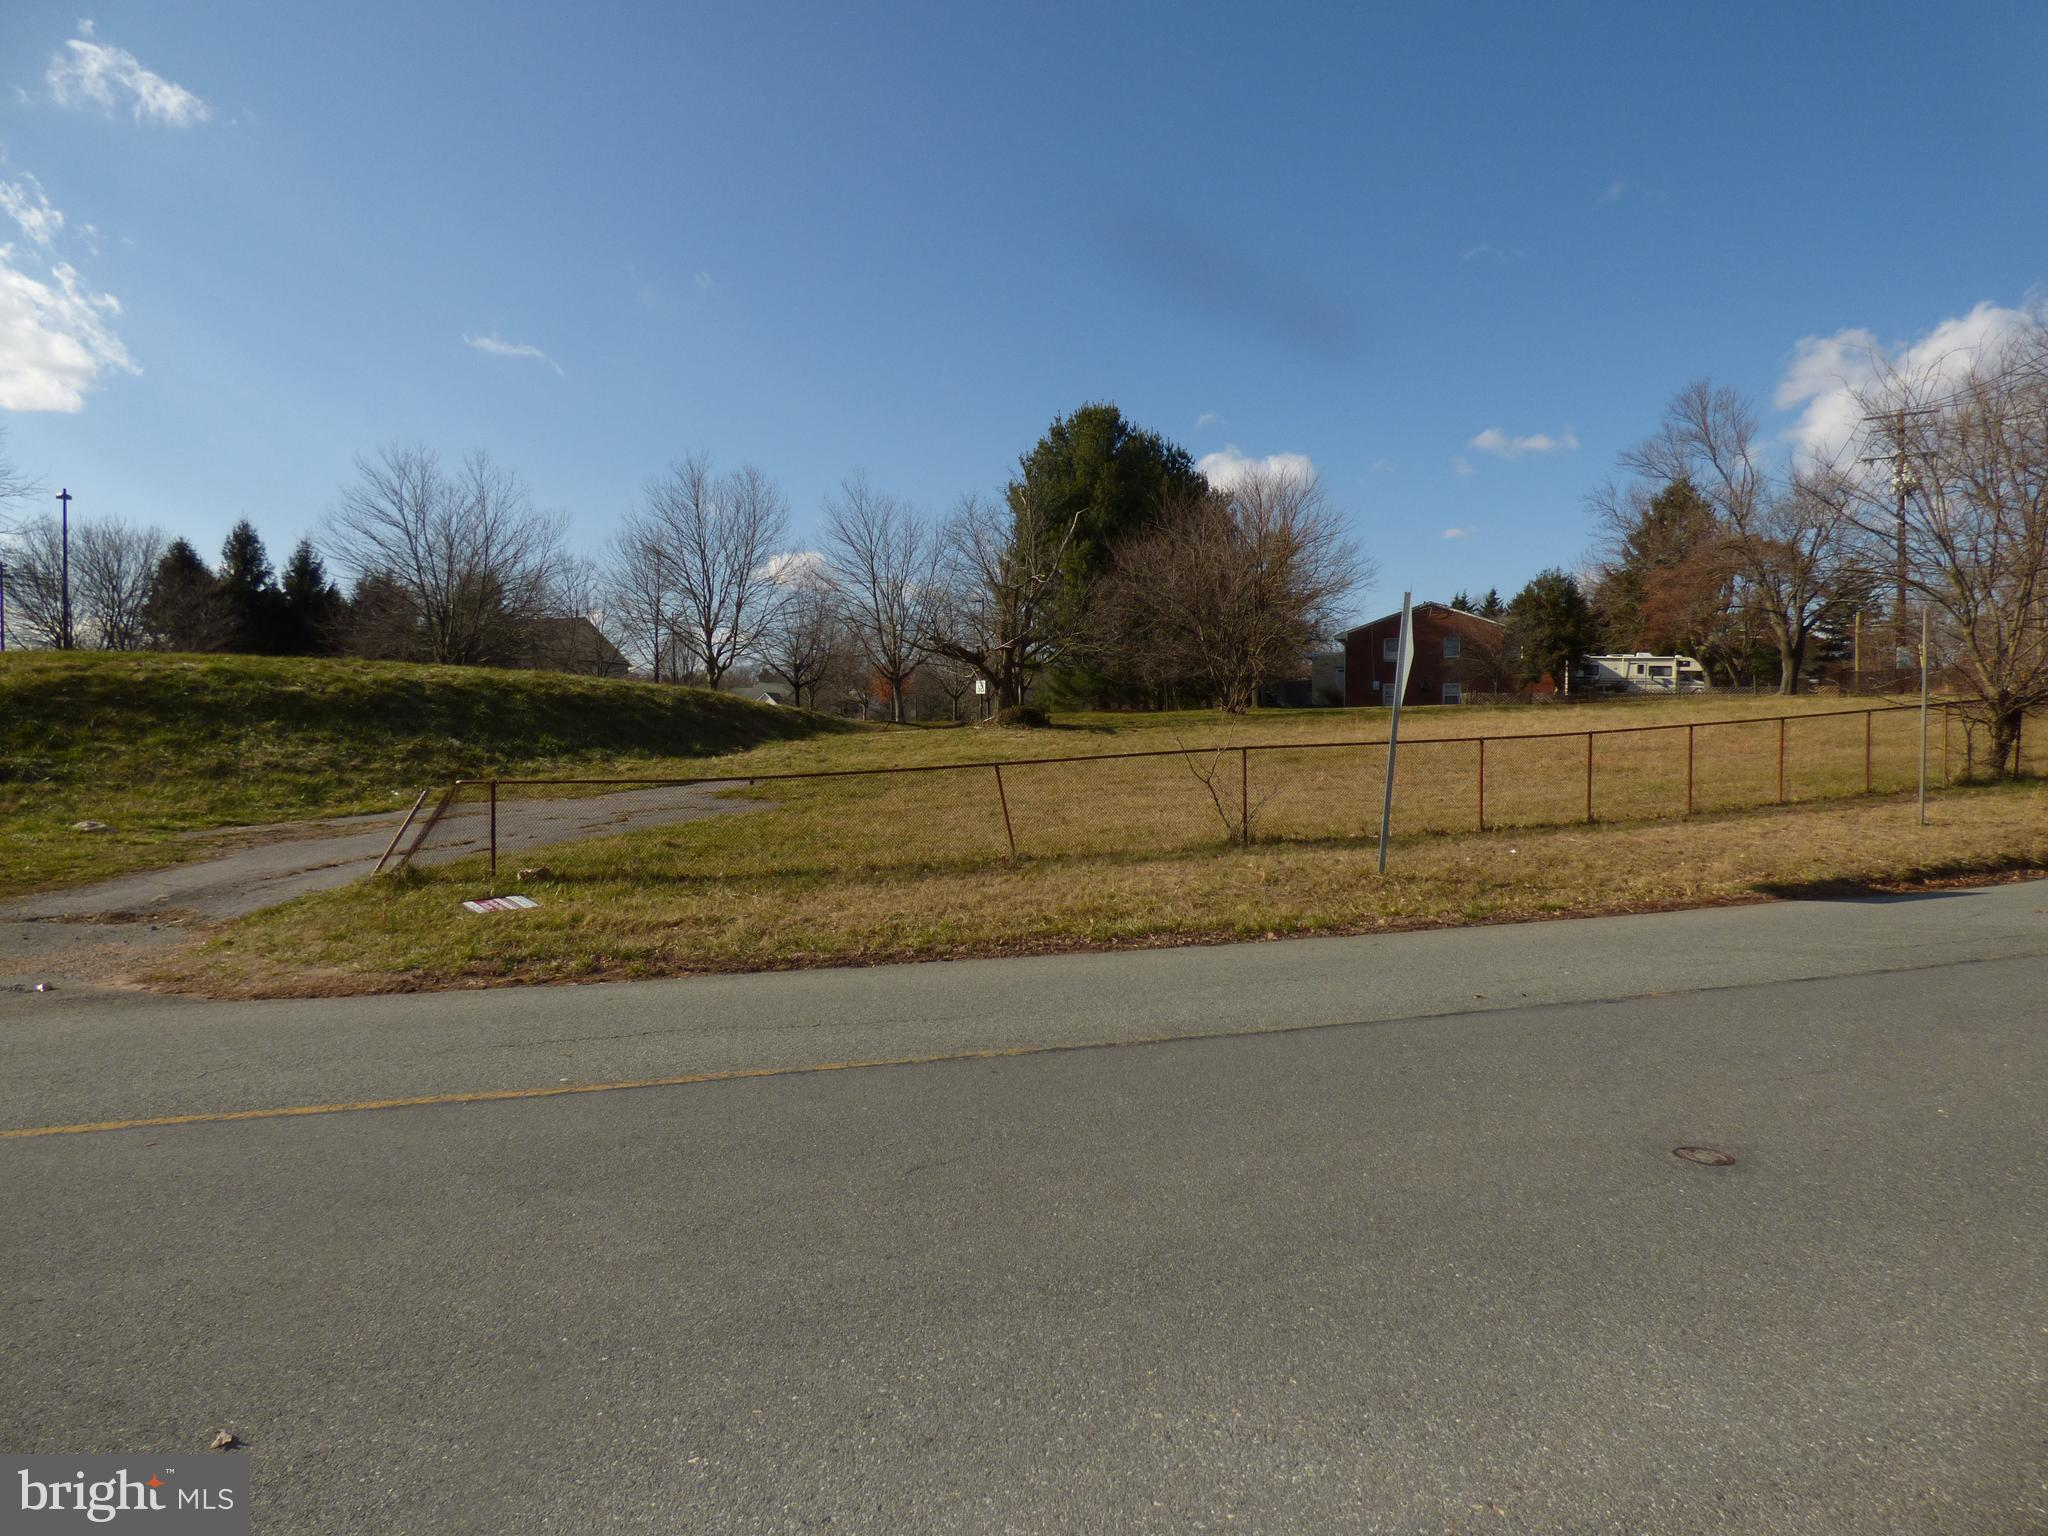 19002 MATENY HILL ROAD, GERMANTOWN, MD 20875